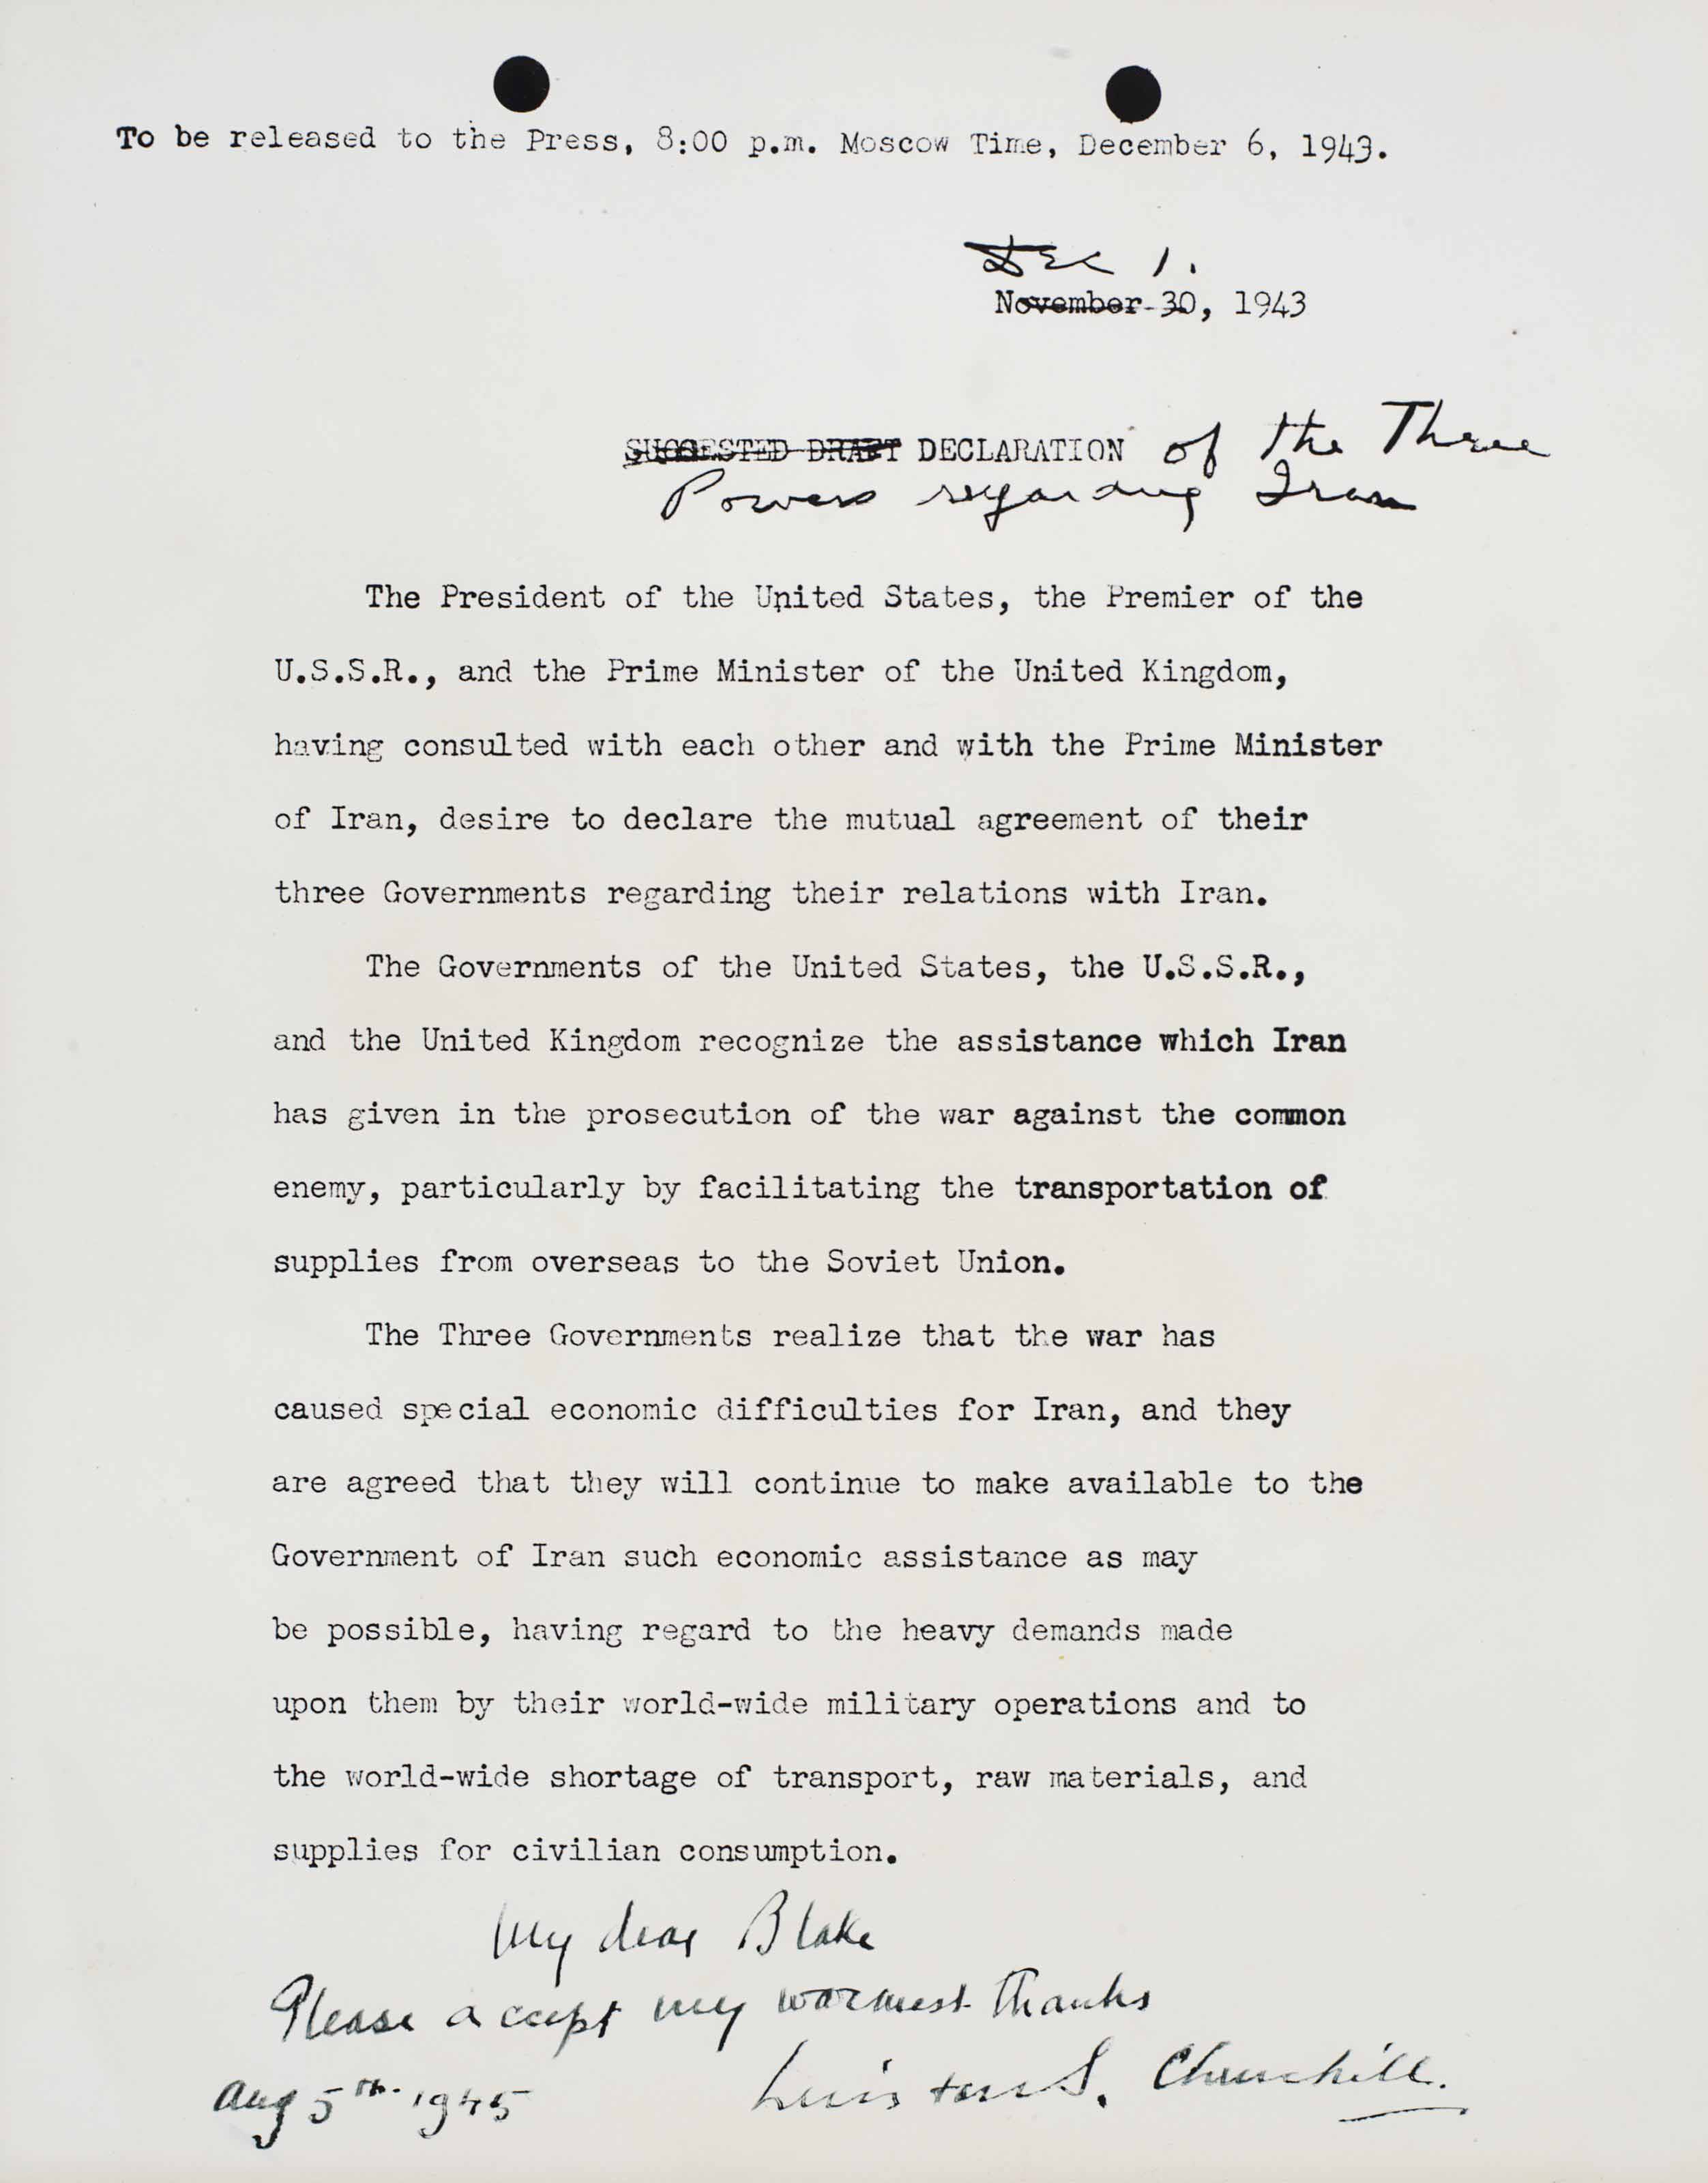 """CHURCHILL, Winston S. Document signed (""""Winston S. Churchill""""), 5 August 1945. Signed photostatic copy of the Declaration of the Three Powers regarding Iran. 2 pages, 4to, glossy reproductions, signed and inscribed in ink by Churchill on bottom of first page. A SOUVENIR COPY OF CHURCHILL'S, ROOSEVELT'S, AND STALIN'S PLEDGE TO AID IRAN, signed by Churchill and inscribed one-day before the atomic bombing of Japan: """"My dear Blake, Please accept my warmest thanks, Aug. 5th 1945, Winston S. Churchill."""" The text of this declaration--originally issued at the close of the Teheran Conference--pledges the three great powers to maintain """"the independence, sovereignty and territorial integrity of Iran."""" Iran would briefly be a hot spot of early cold wear tension between Moscow, London and Washington. The Declaration's final words have an ironic ring in light of current-day tensions over Iran: the Allies """"count upon the participation of Iran, together with all other peace-loving nations, in"""